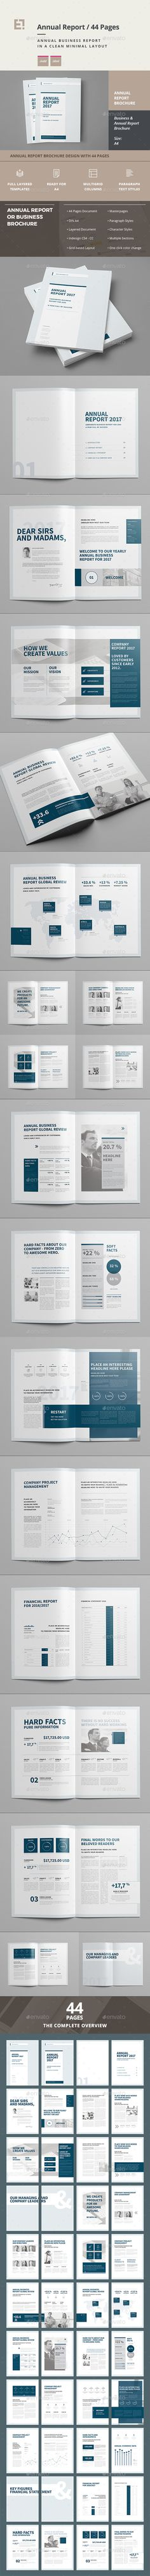 98 best annual report templates images on pinterest in 2018 annual report by egotype business brochure 1 professional clean and modern 44 page corporate brochure just drop in your own pictures and texts an friedricerecipe Gallery